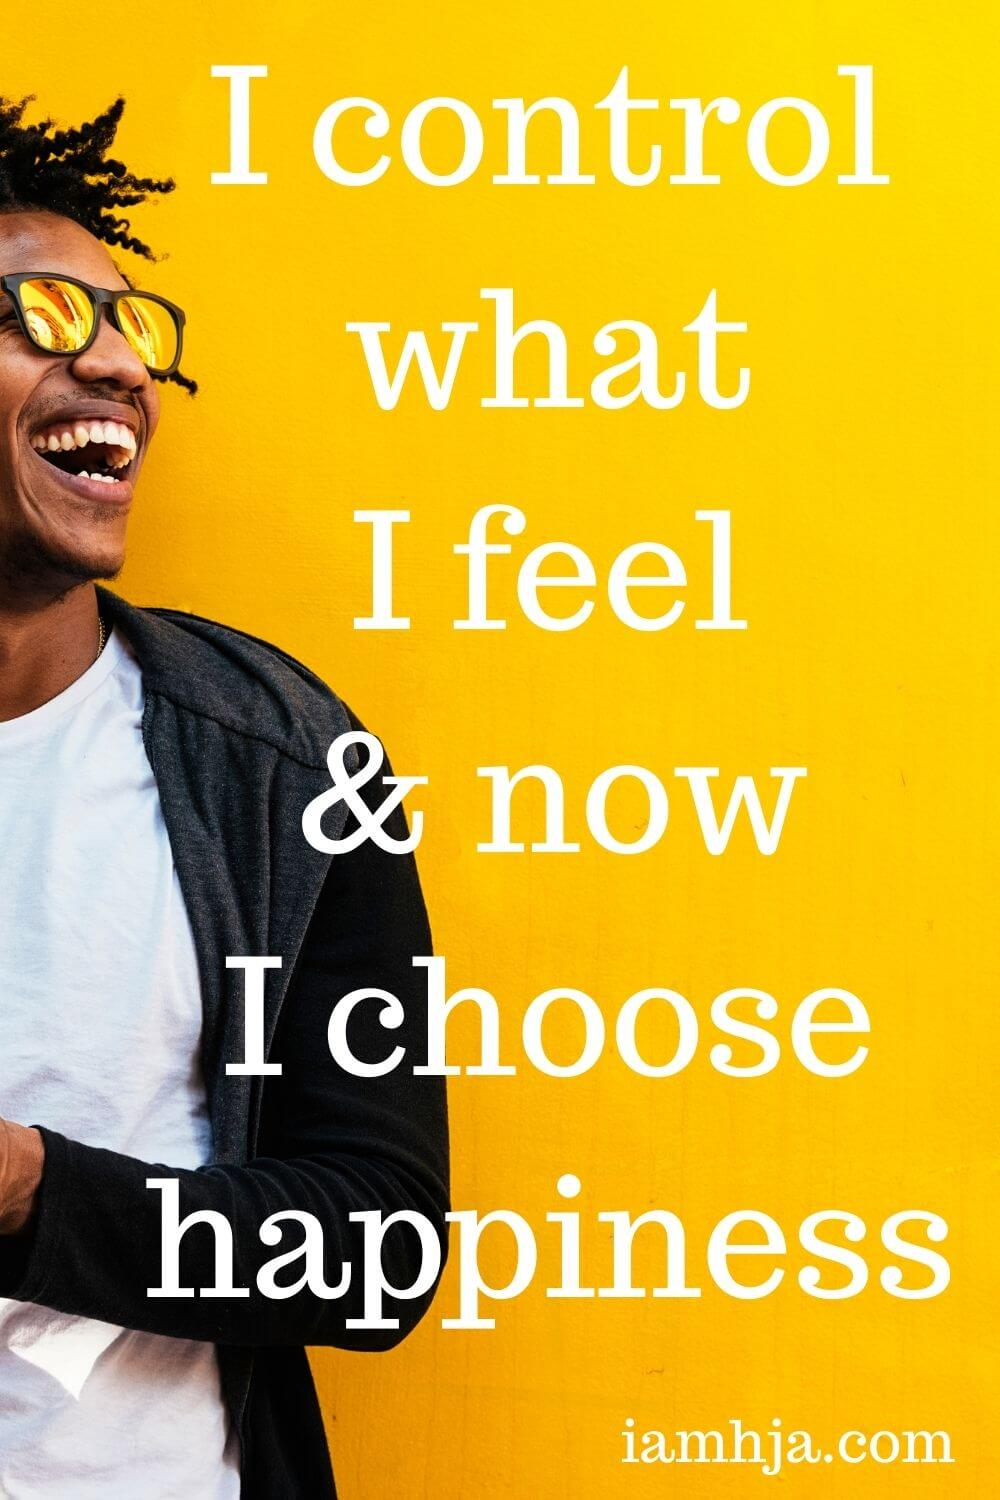 I control what I feel and now I choose happiness